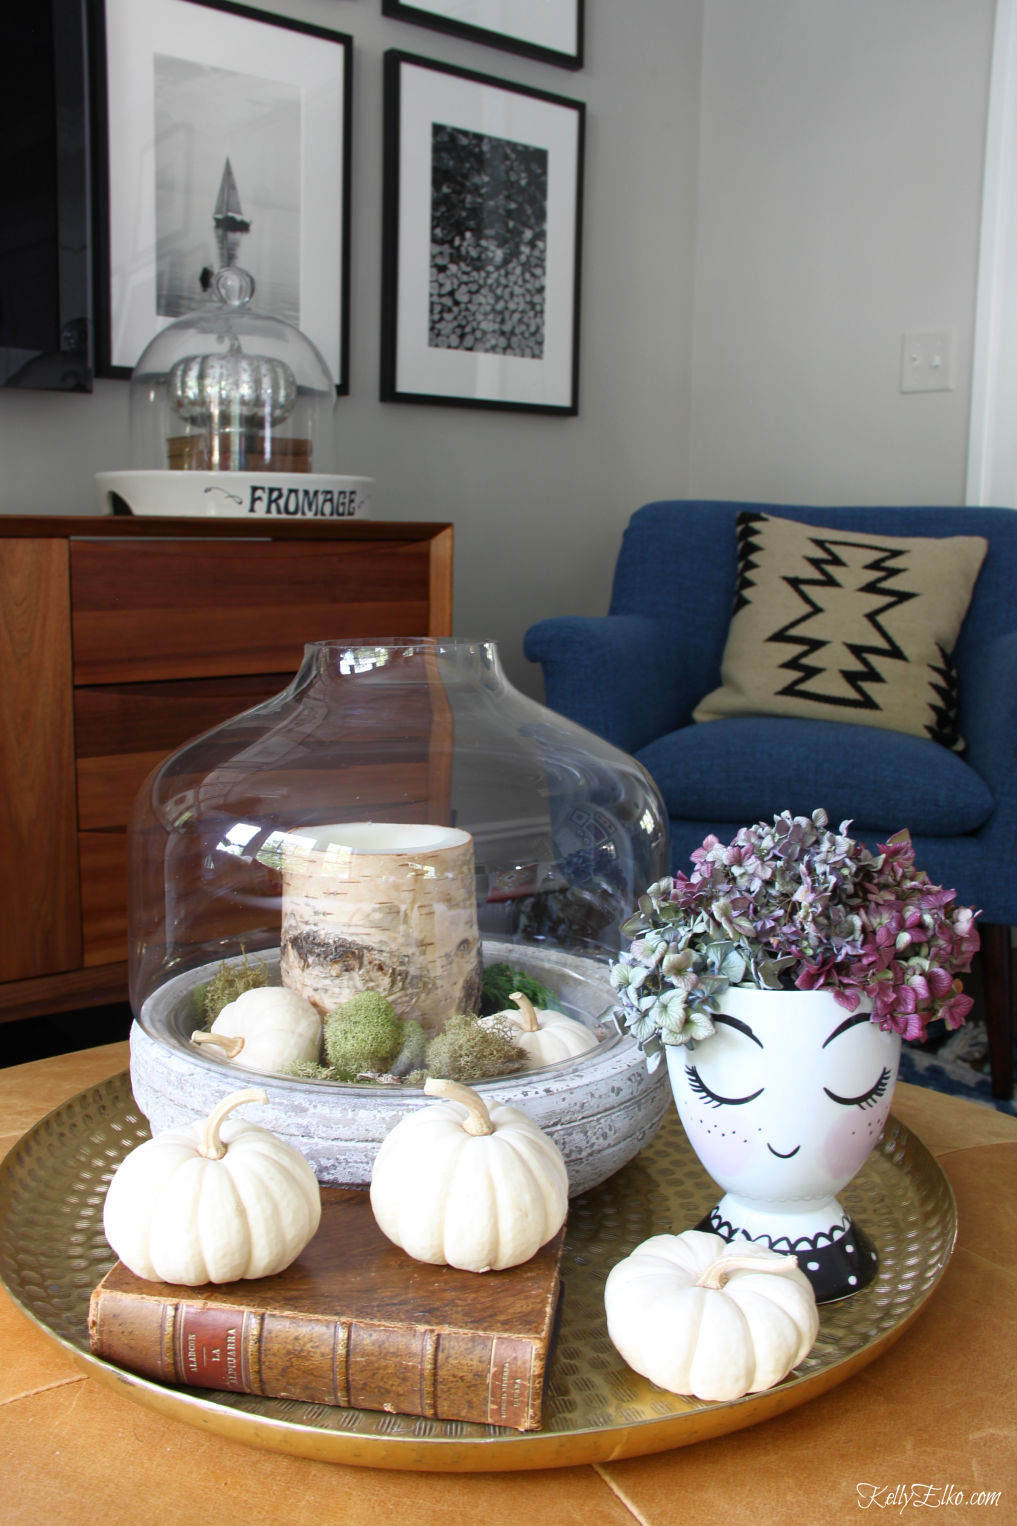 Simple Fall Touches - love this huge brass tray with terrarium of moss and pumpkins and the head vase with hydrangeas kellyelko.com #fall #falldecor #falldecorating #interiordecor #pumpkins #hydrangeas #eclecticstyle #autumndecor